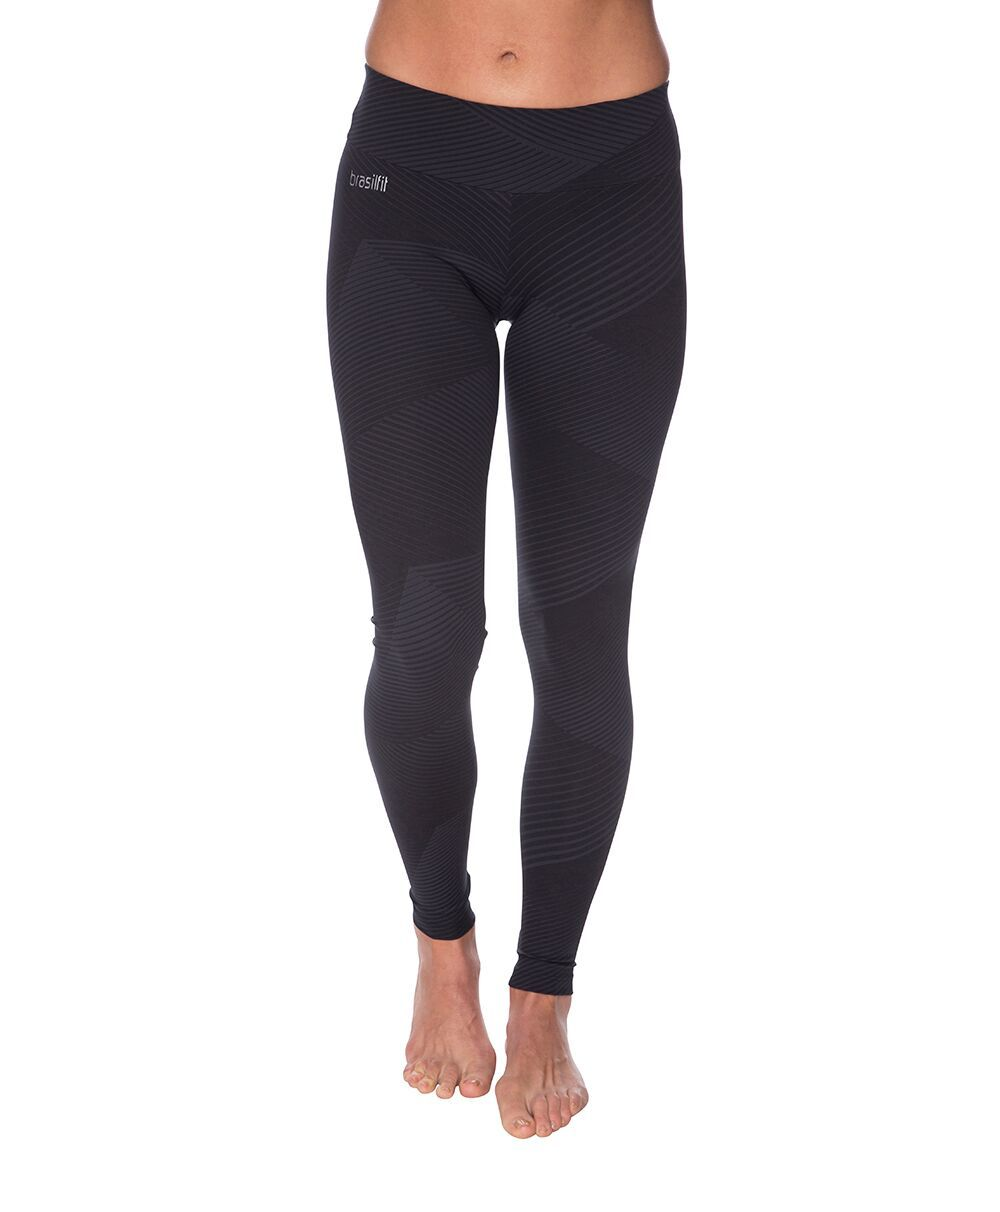 Destiny Full Length Legging